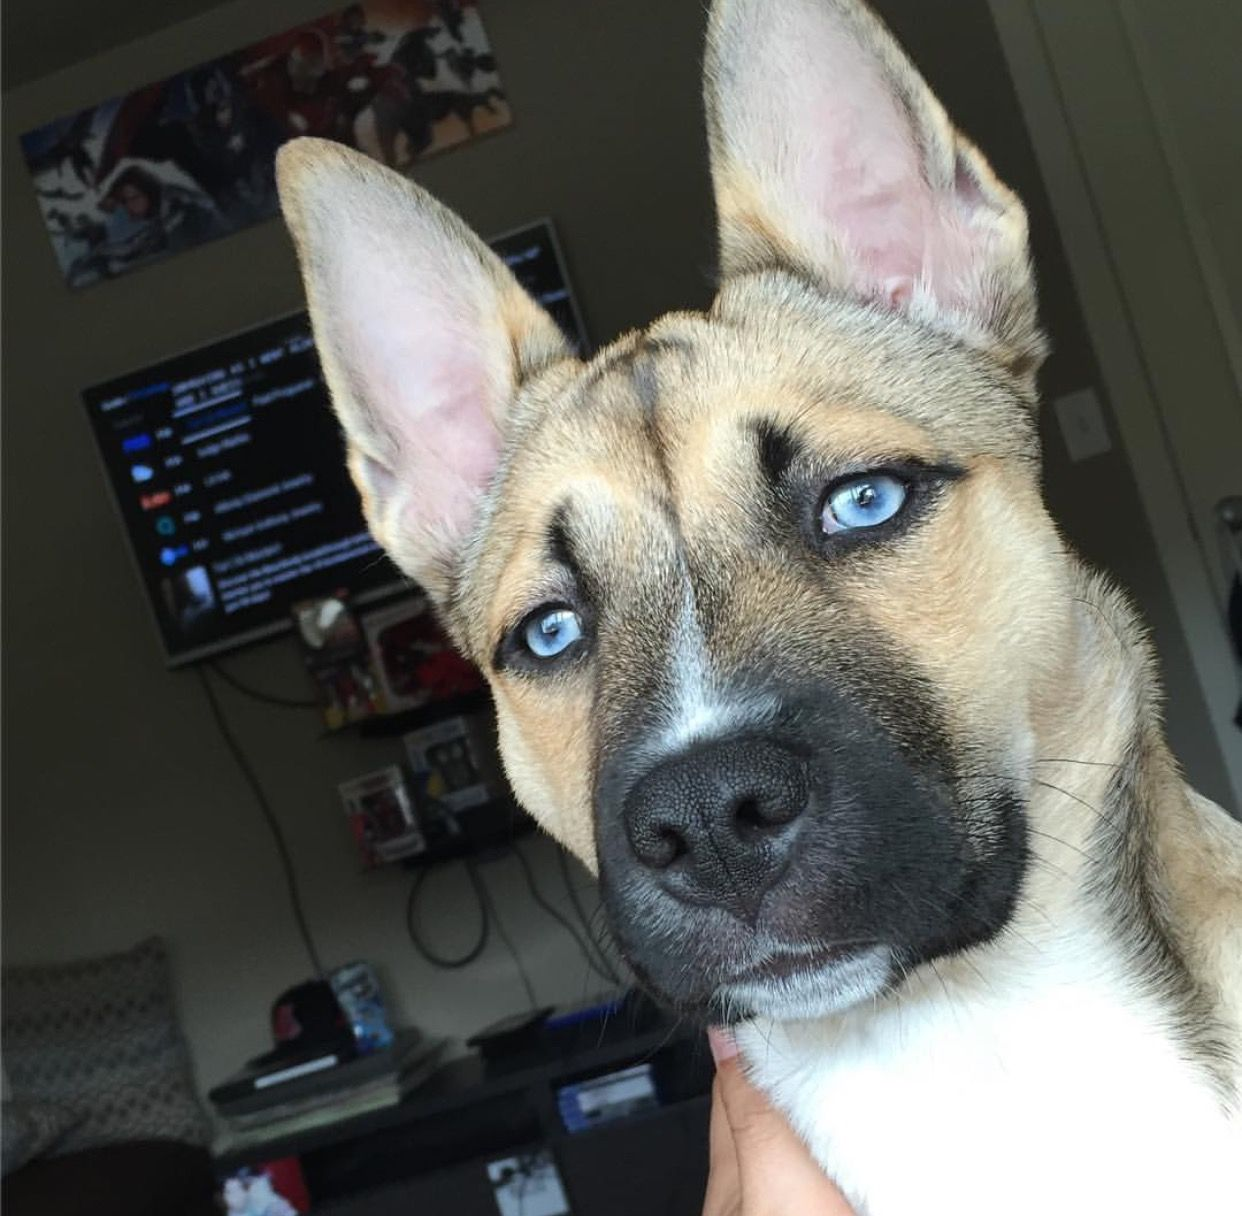 Husky puppies for sale yucca valley - Pitsky Puppy Puppy Pitskypuppy Huskypuppy Husky Cutepuppy Cutepuppies